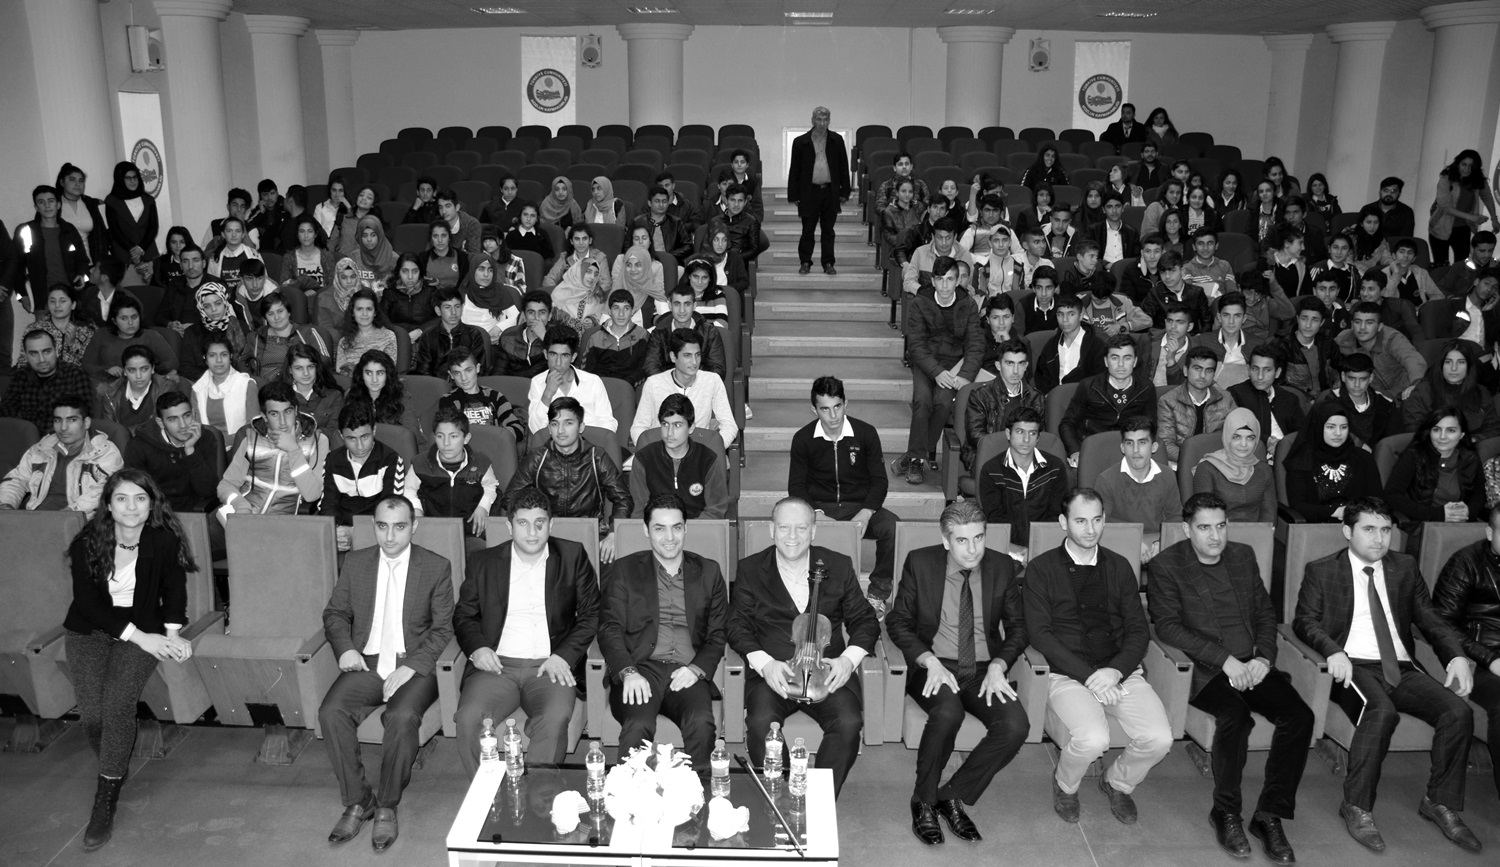 17 March 2017 Lecture-Recital, Kaymakamlık, Kozluk (Aybüke on the far left)